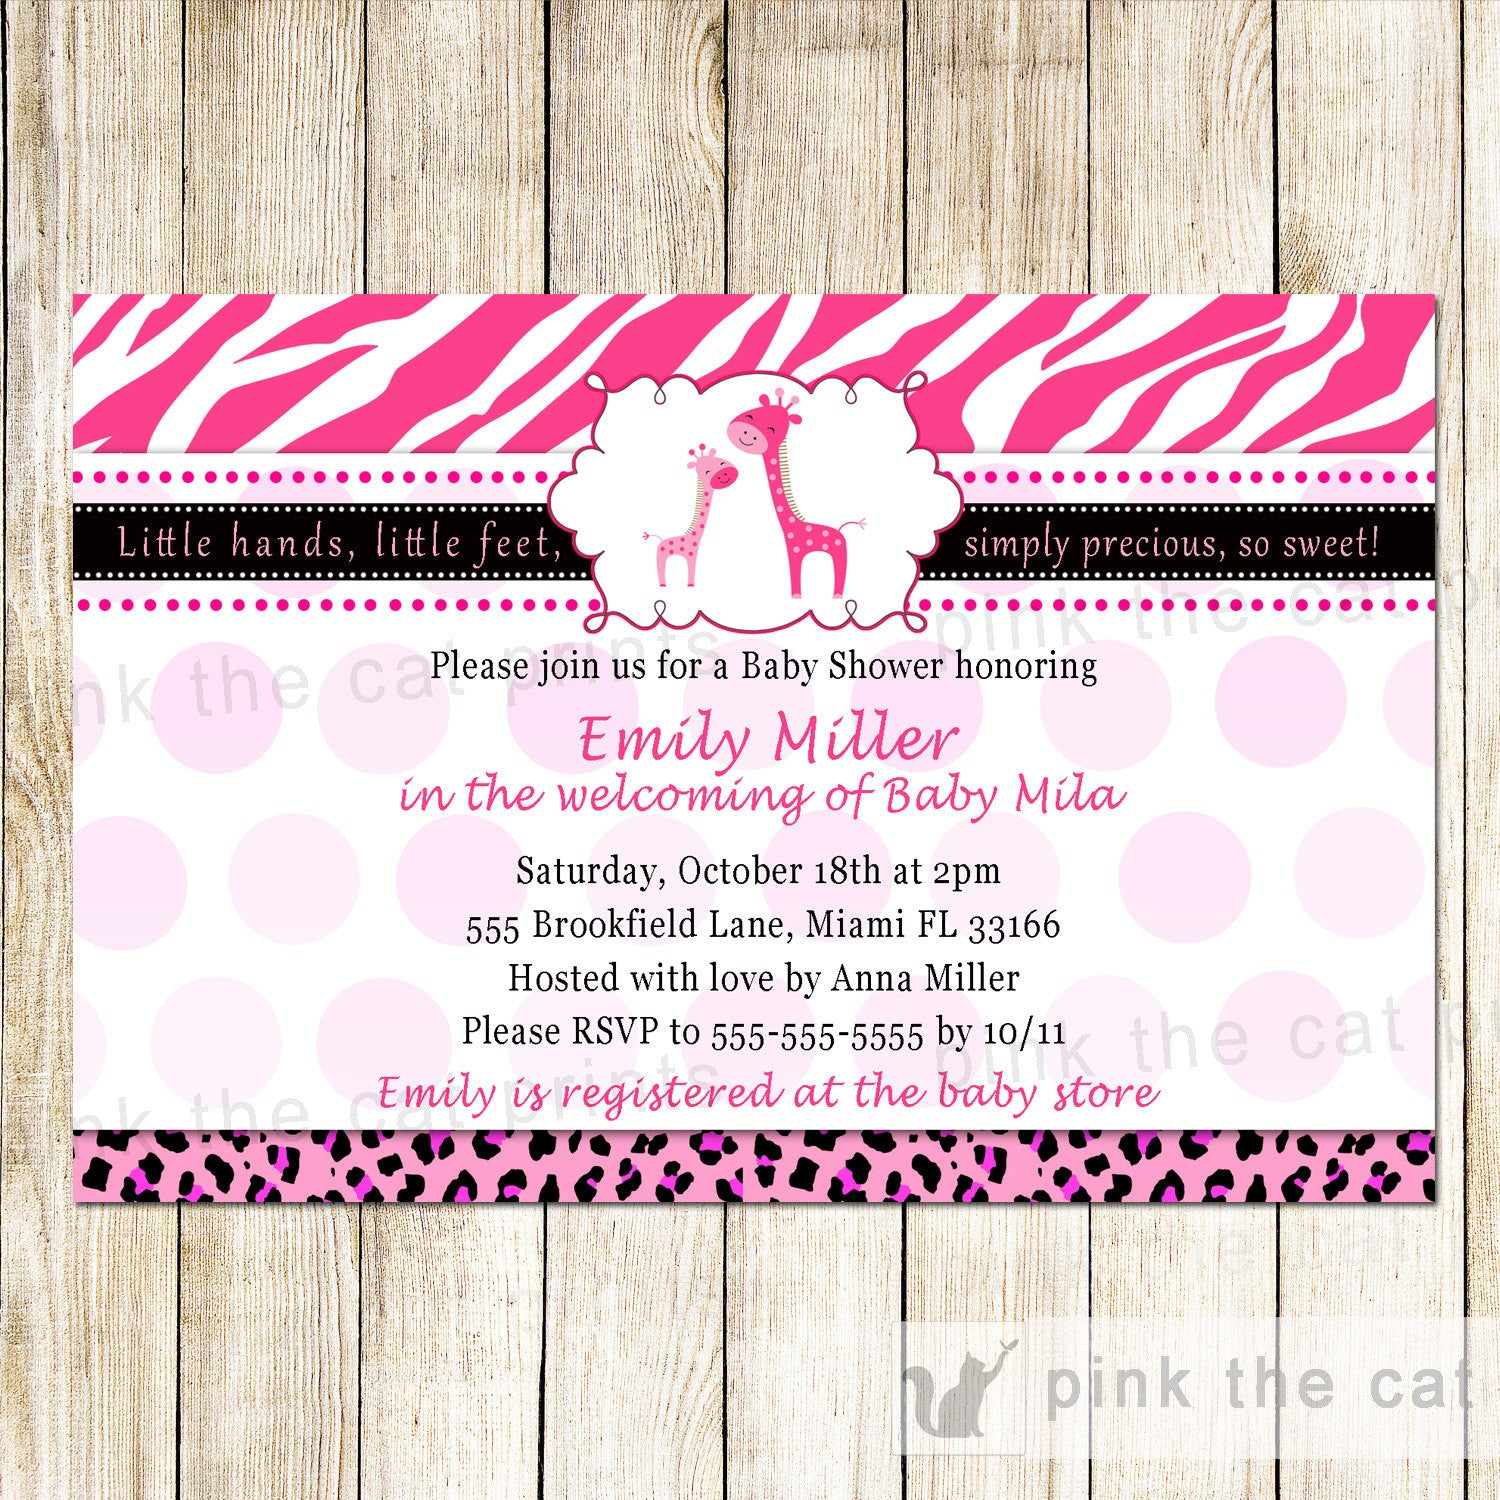 Giraffe Baby Girl Shower Invitation Hot Pink Zebra – Pink The Cat